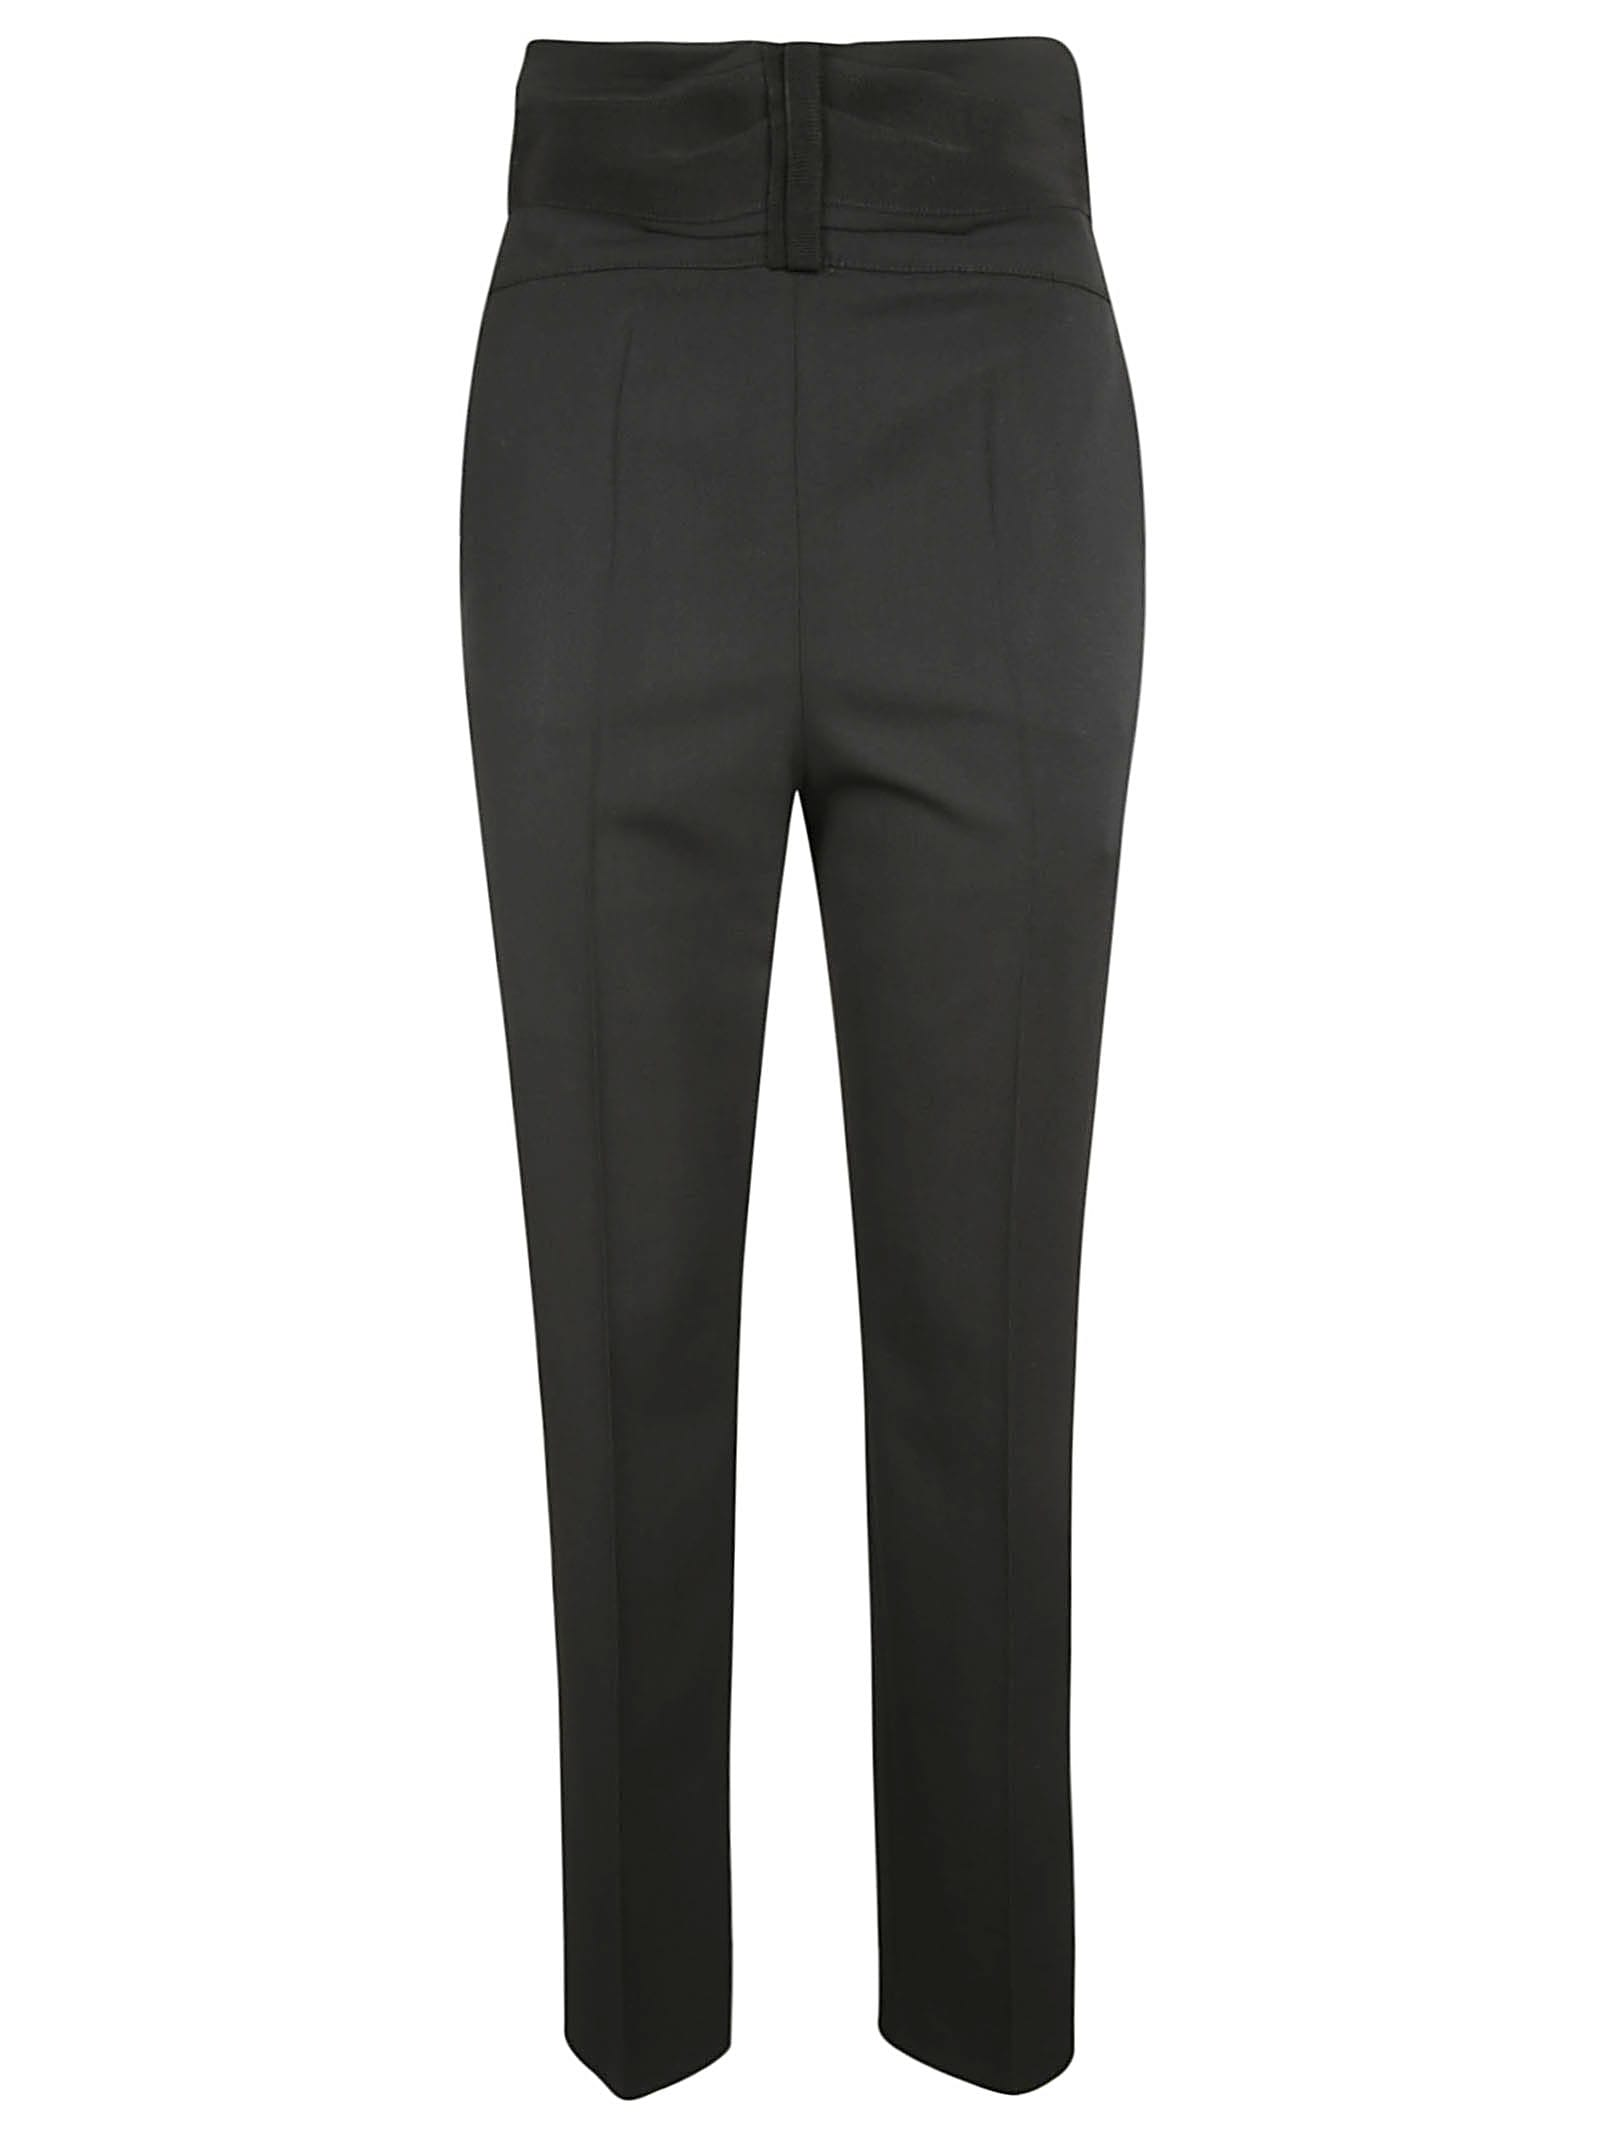 RED Valentino Bow Detail Trousers